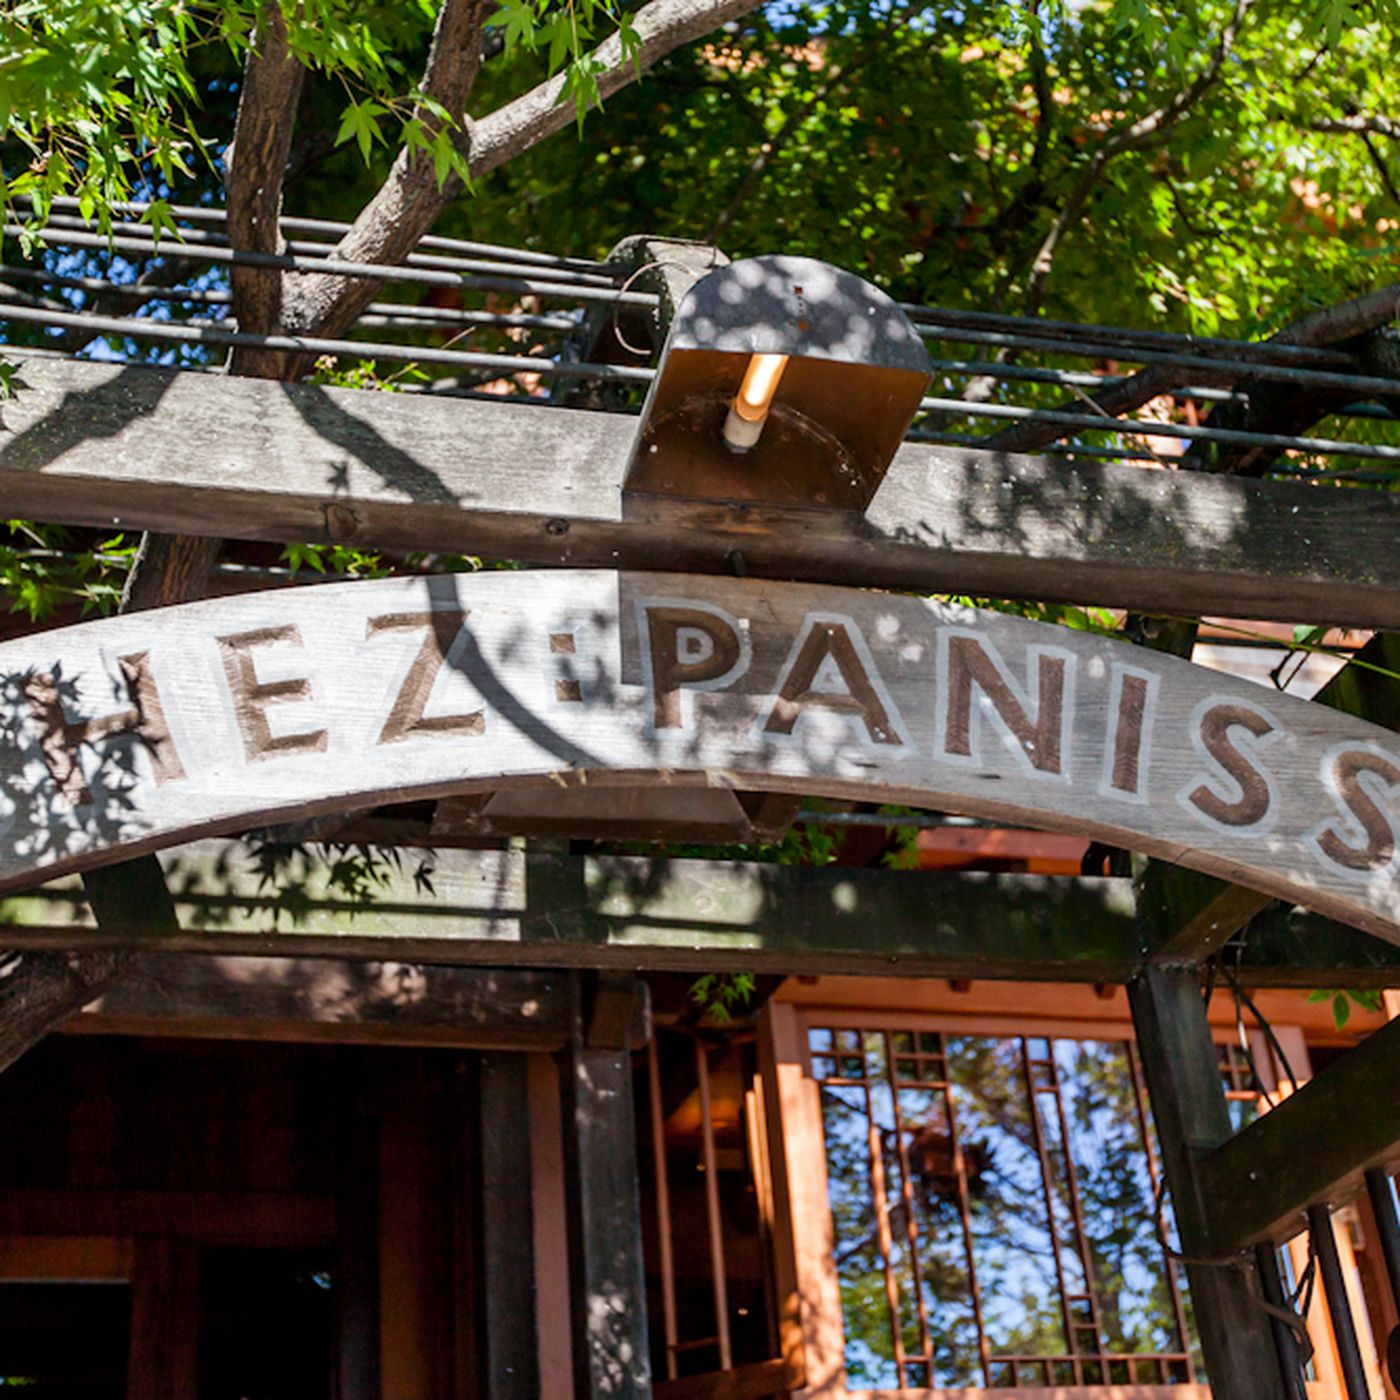 eater.com - Eve Batey - Chez Panisse Sues Insurance Company Over COVID-19 Coverage